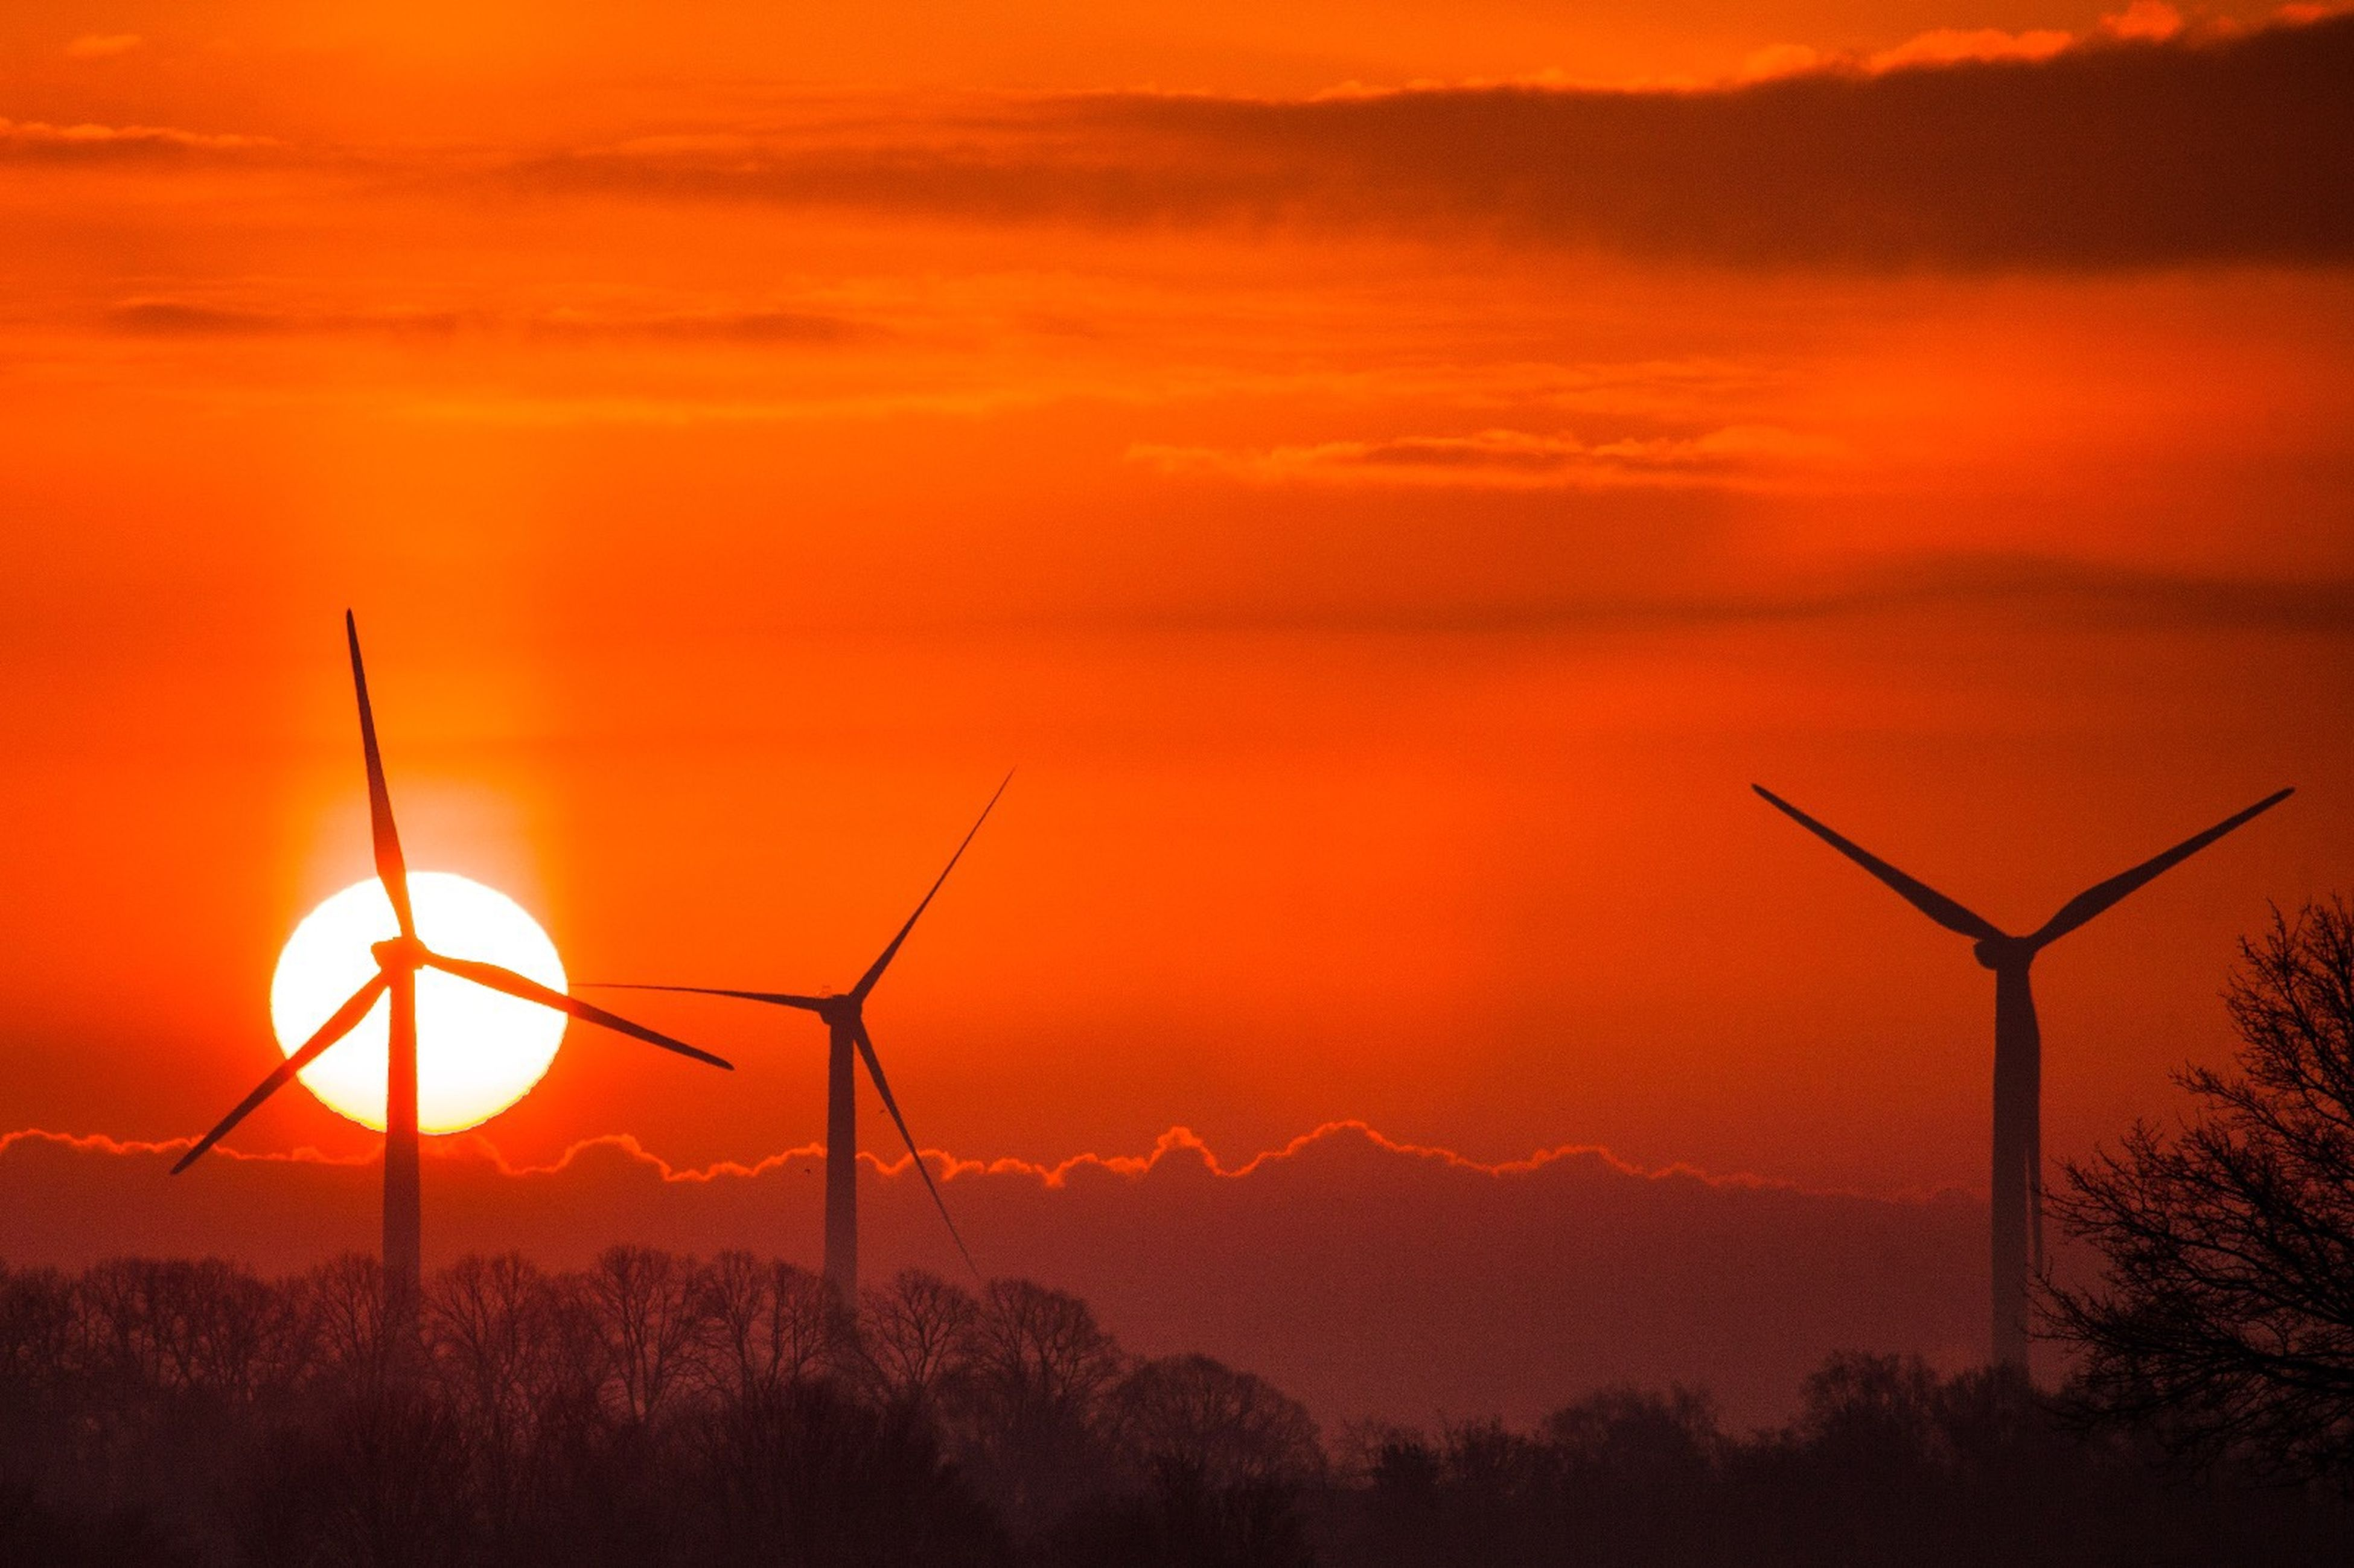 sunset, alternative energy, fuel and power generation, renewable energy, wind turbine, wind power, environmental conservation, orange color, windmill, nature, industrial windmill, beauty in nature, sky, sun, silhouette, scenics, no people, tranquility, outdoors, tranquil scene, field, technology, mountain, traditional windmill, day